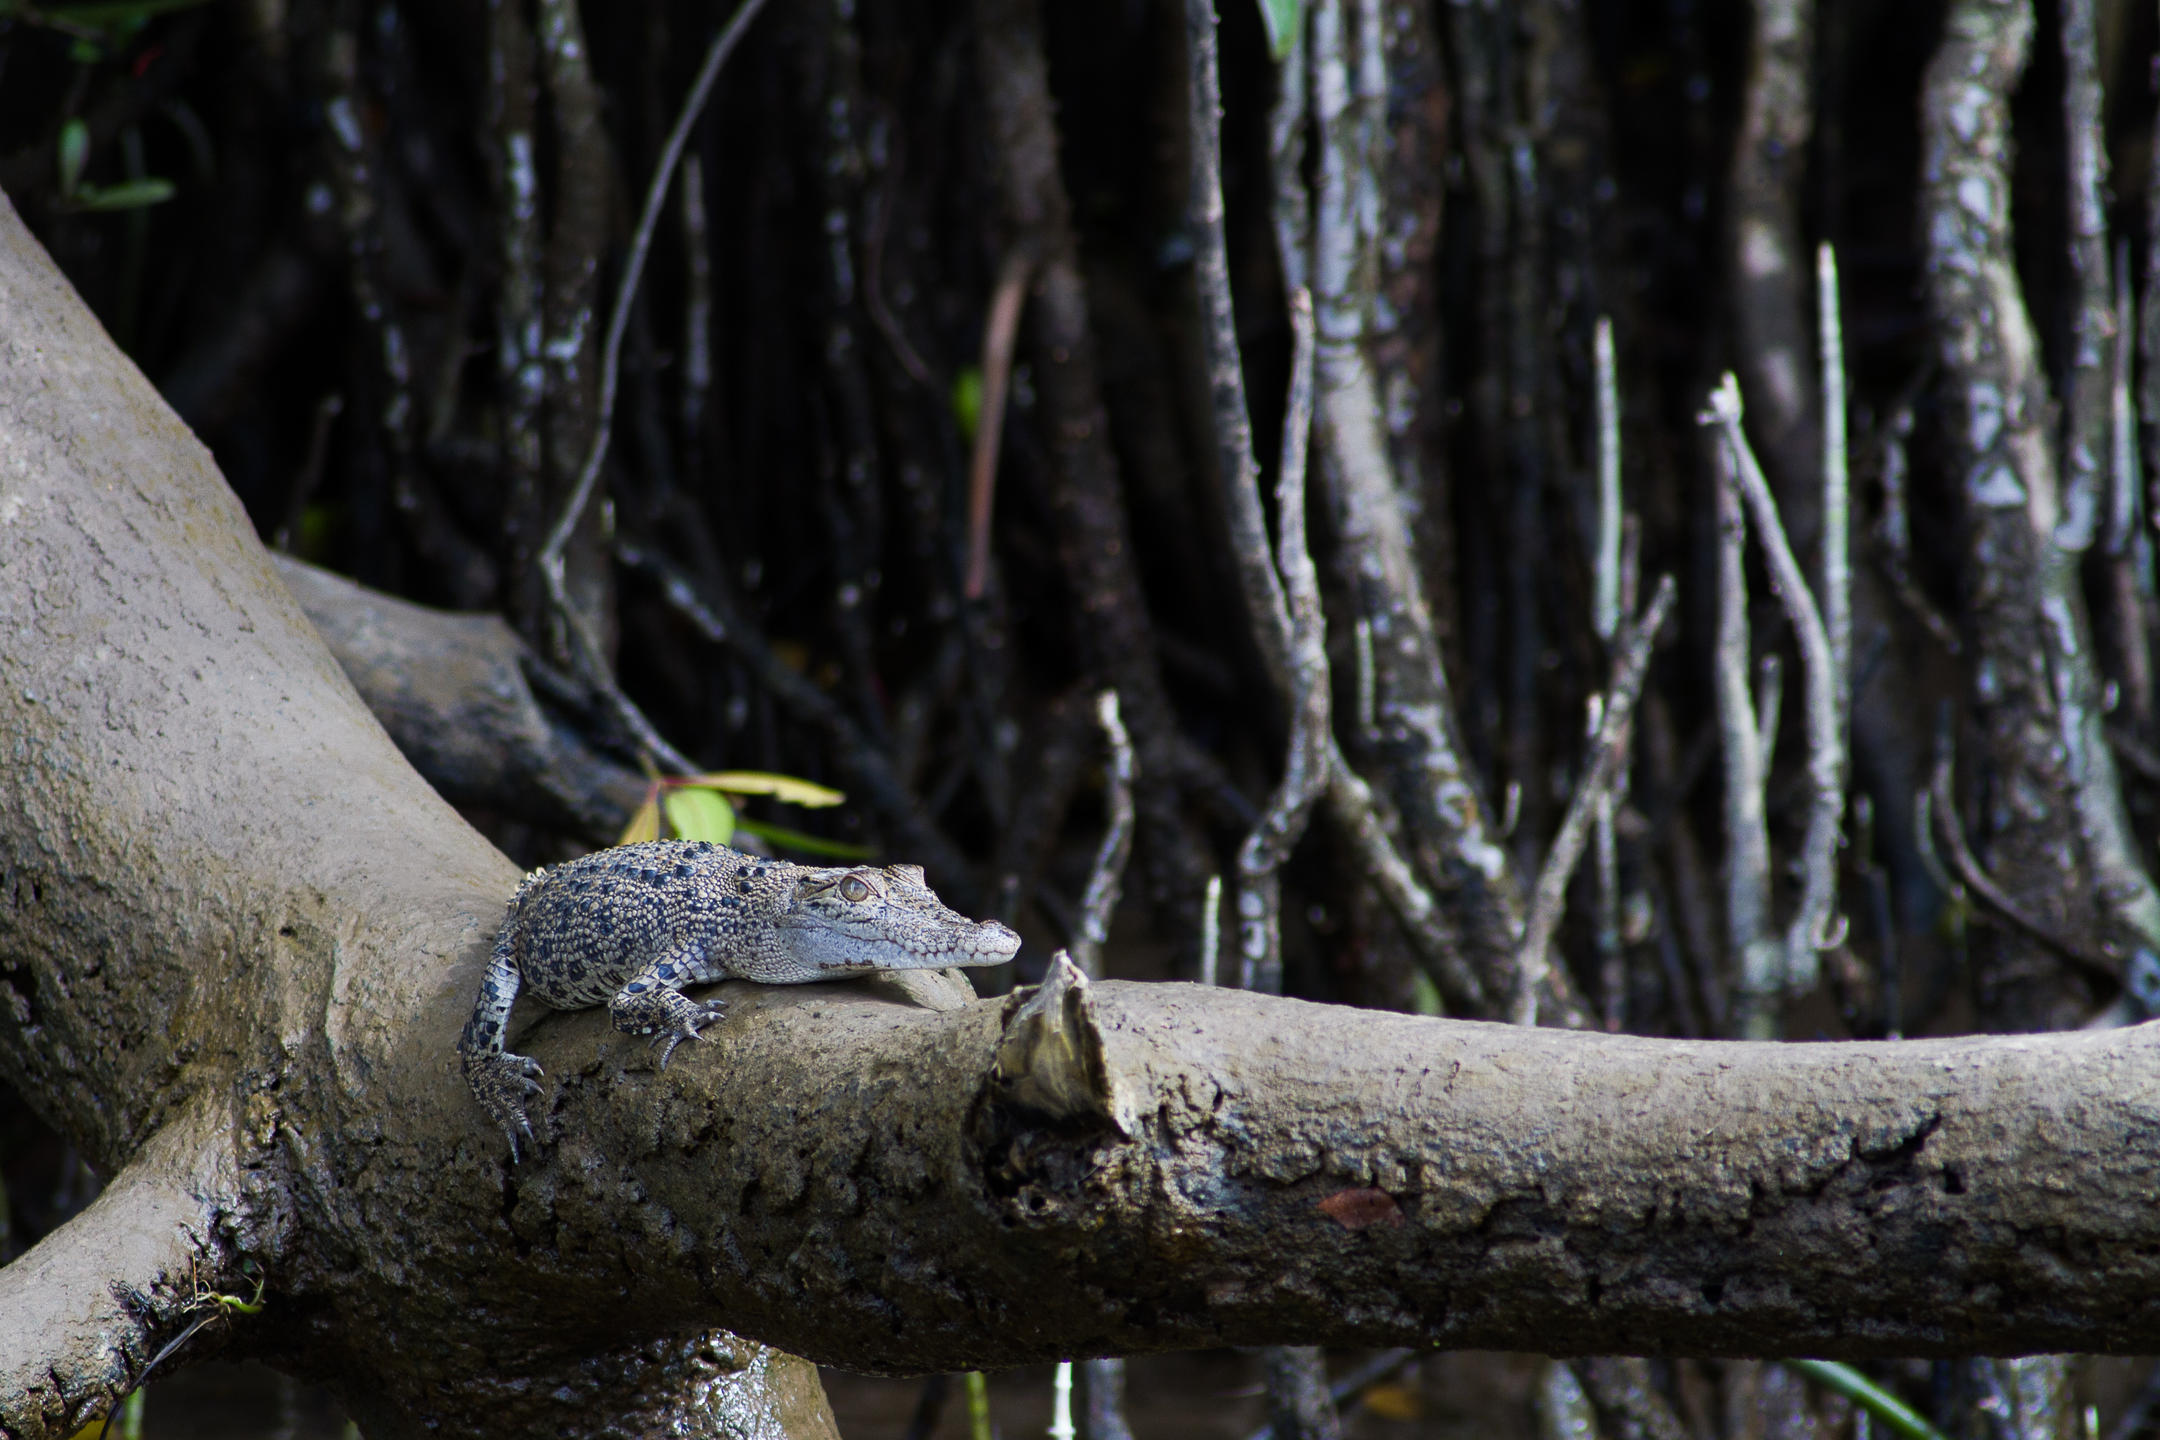 A young crocodile sits on a branch